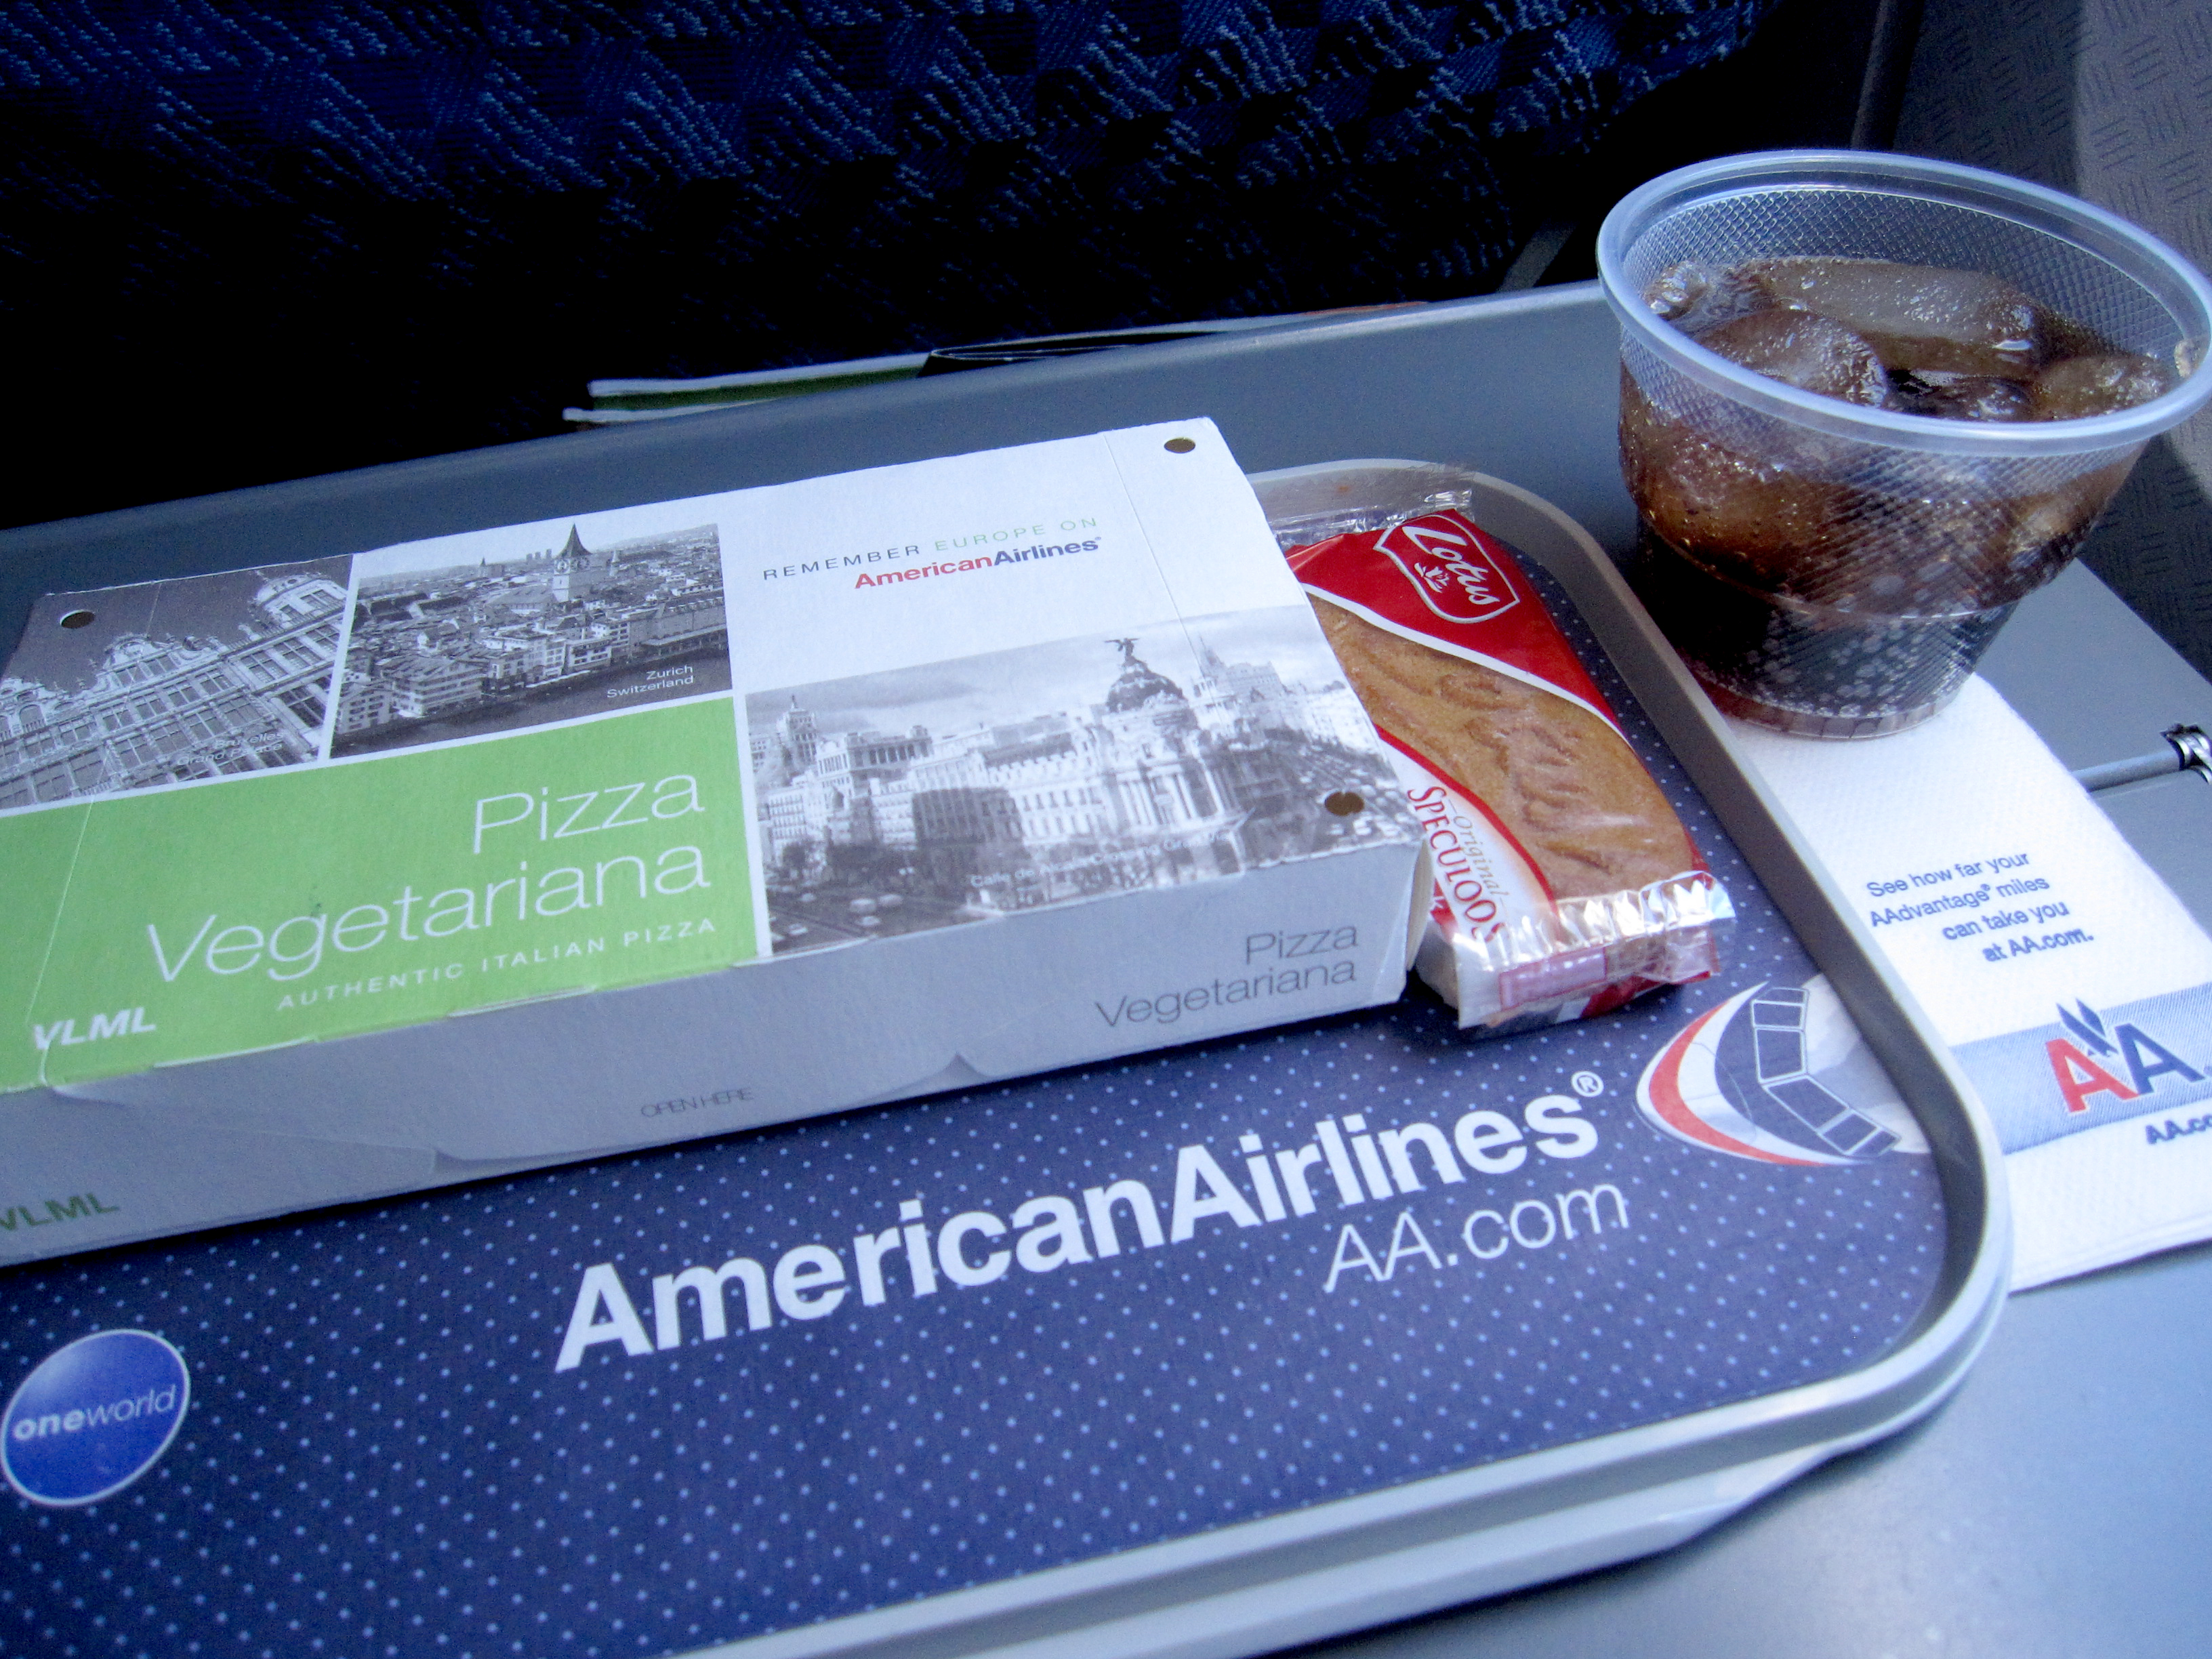 Description American Airlines.Airline meal.CDGJFK.Pizza.2010.JPG